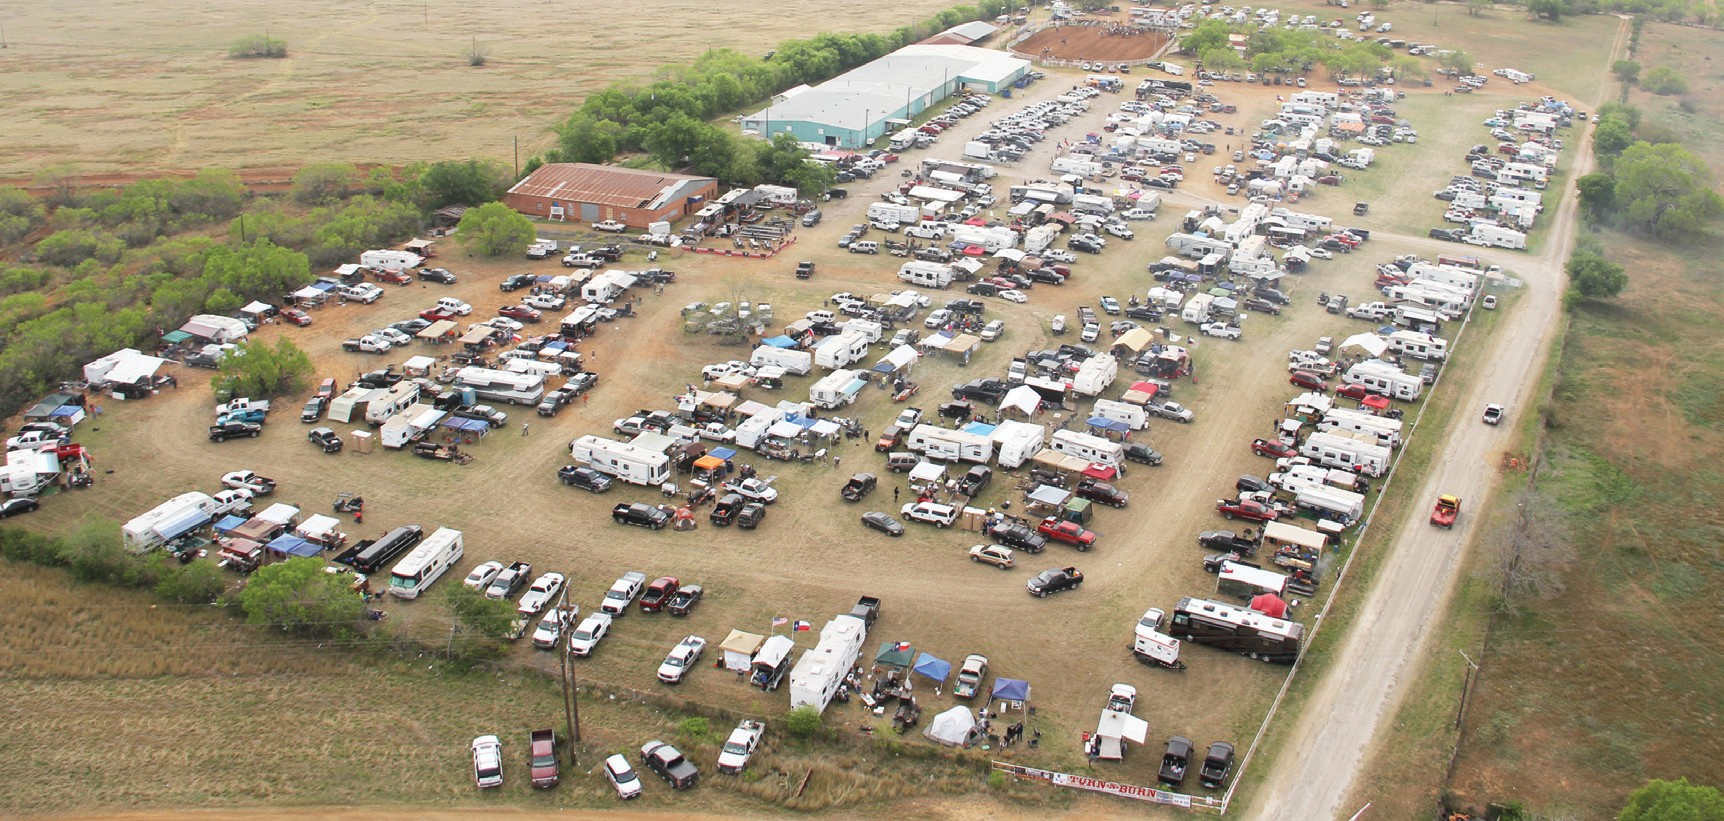 Top Photo: A panoramic photo showing the BBQ cookers at pre-awards time this past weekend. Above Photo: The Atascosa County Showbarn grounds were wall-to-wall barbeque cookers at the Pleasanton Chamber of Commerce Third Annual Turn-N-Burn Cook-off held last weekend. A record breaking 149 teams participated in the event.